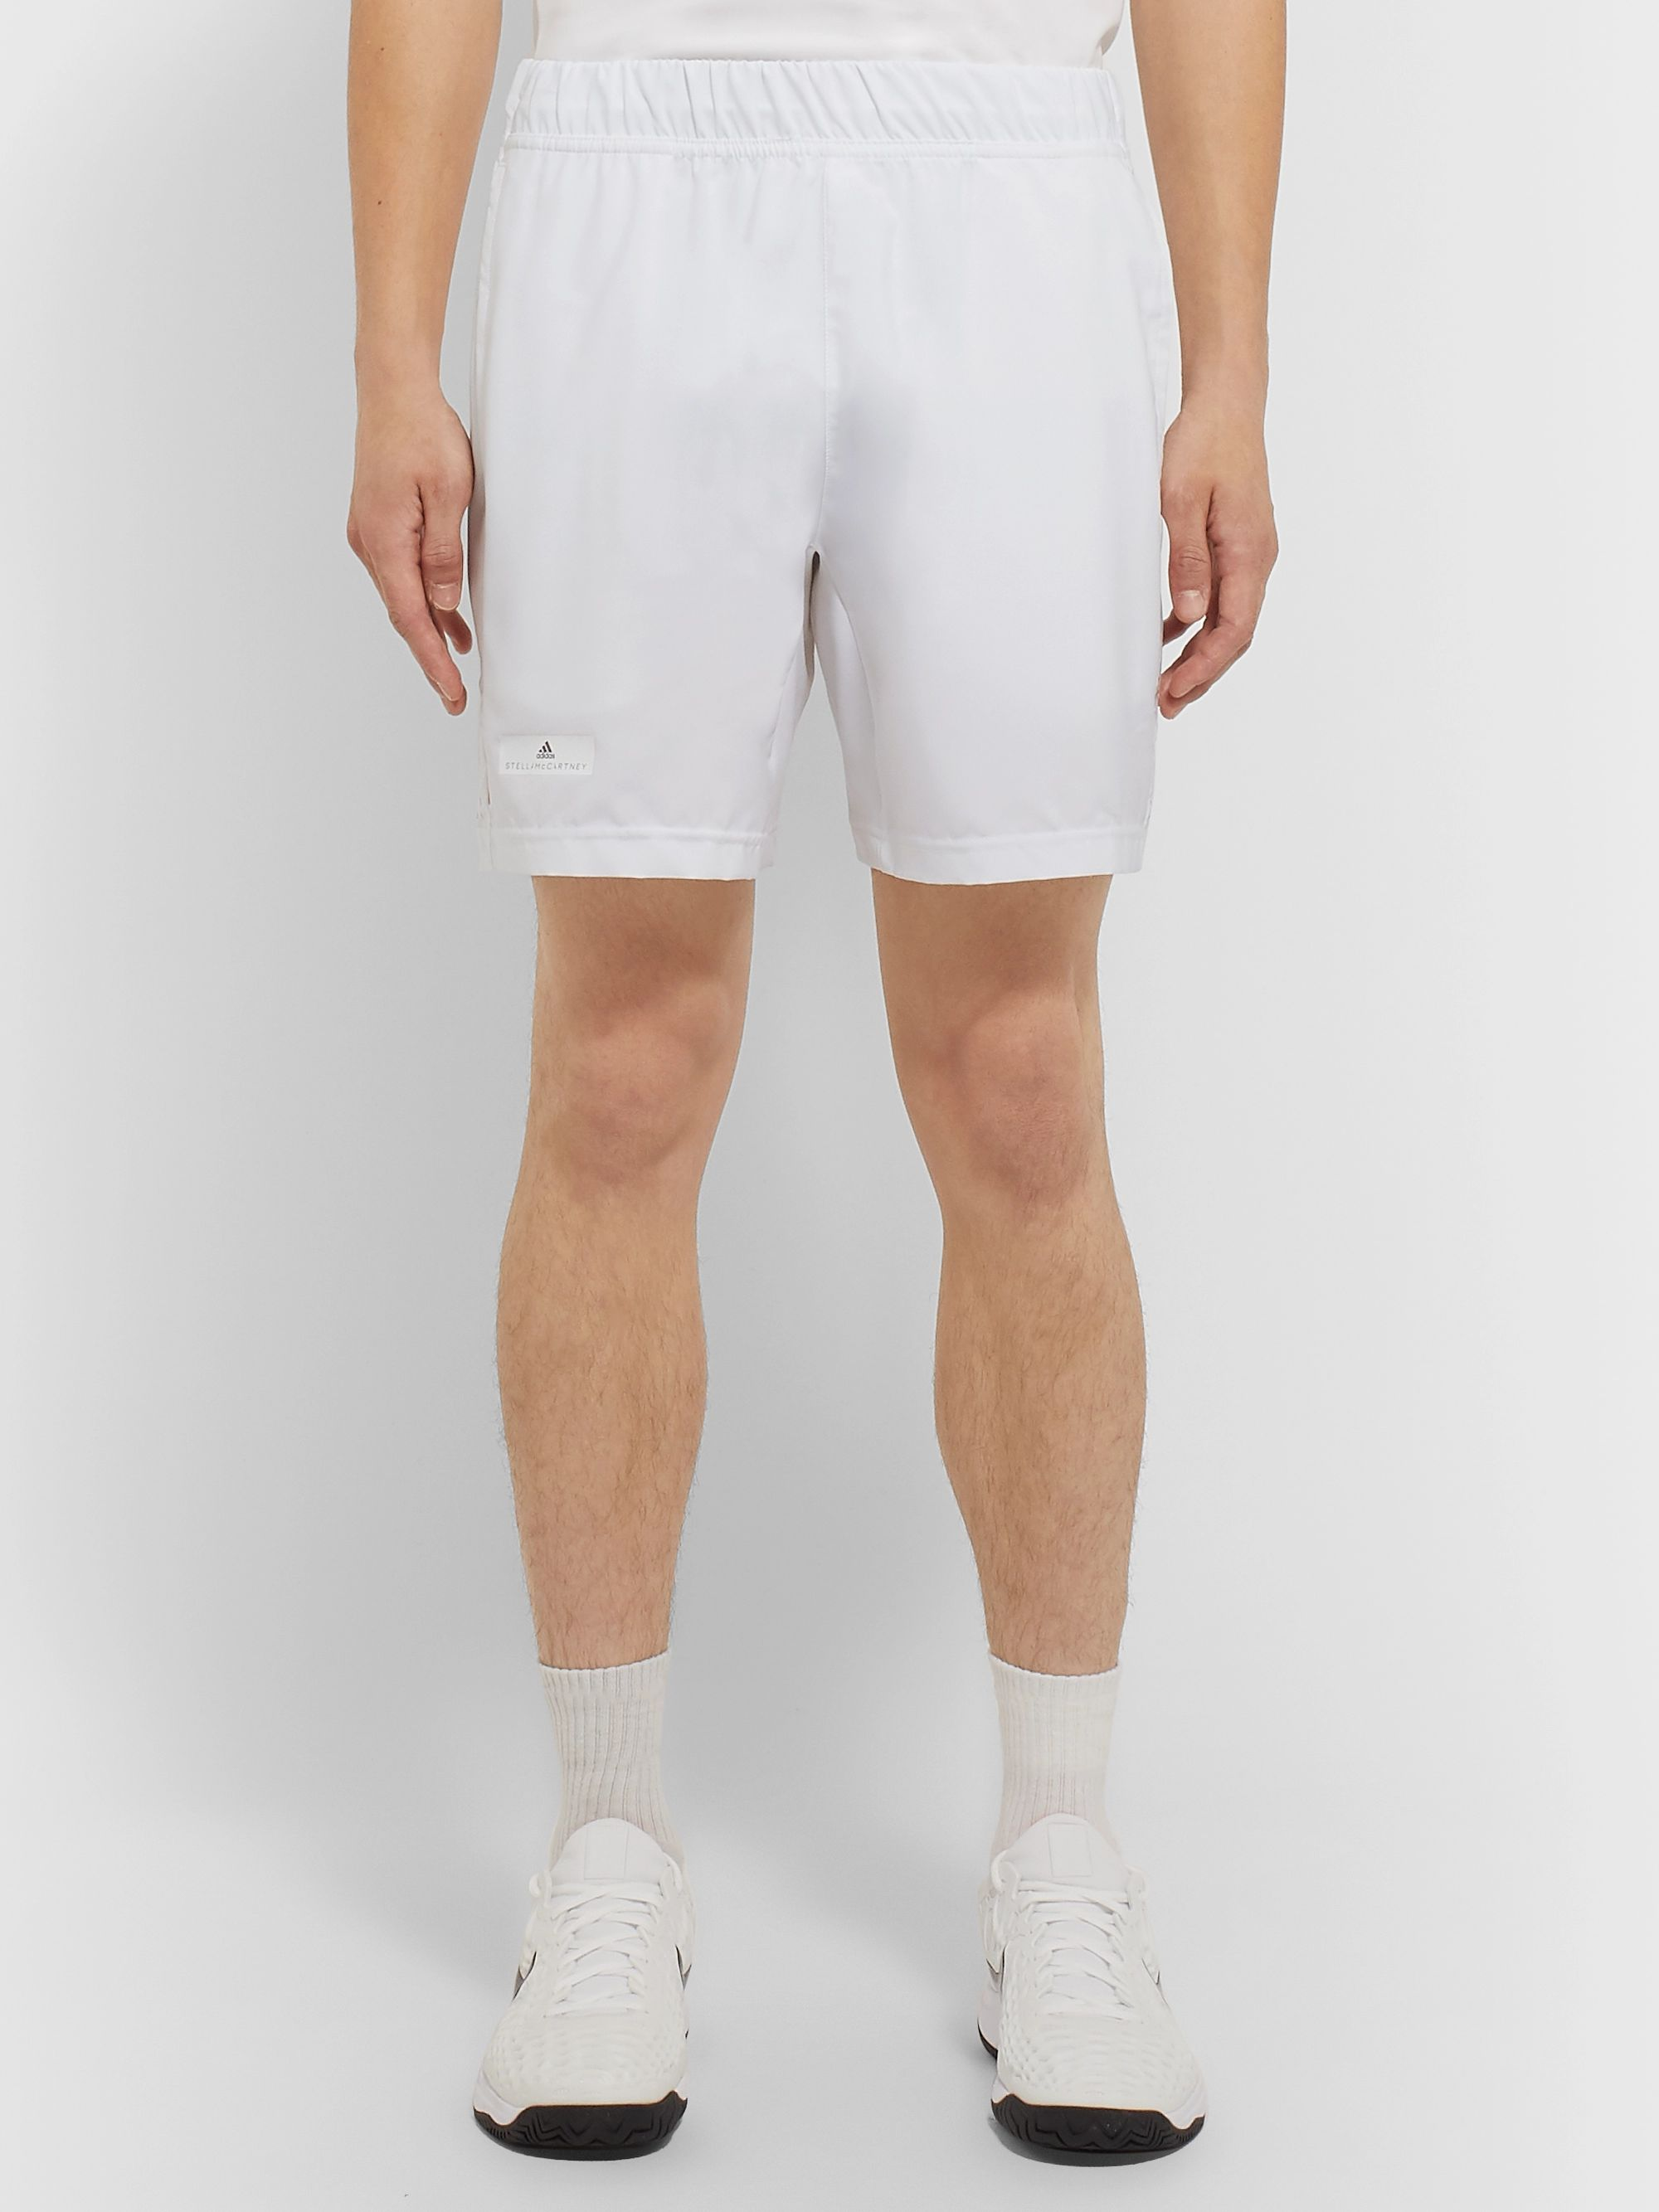 Adidas Sport + Stella McCartney Wimbledon Shell Tennis Shorts